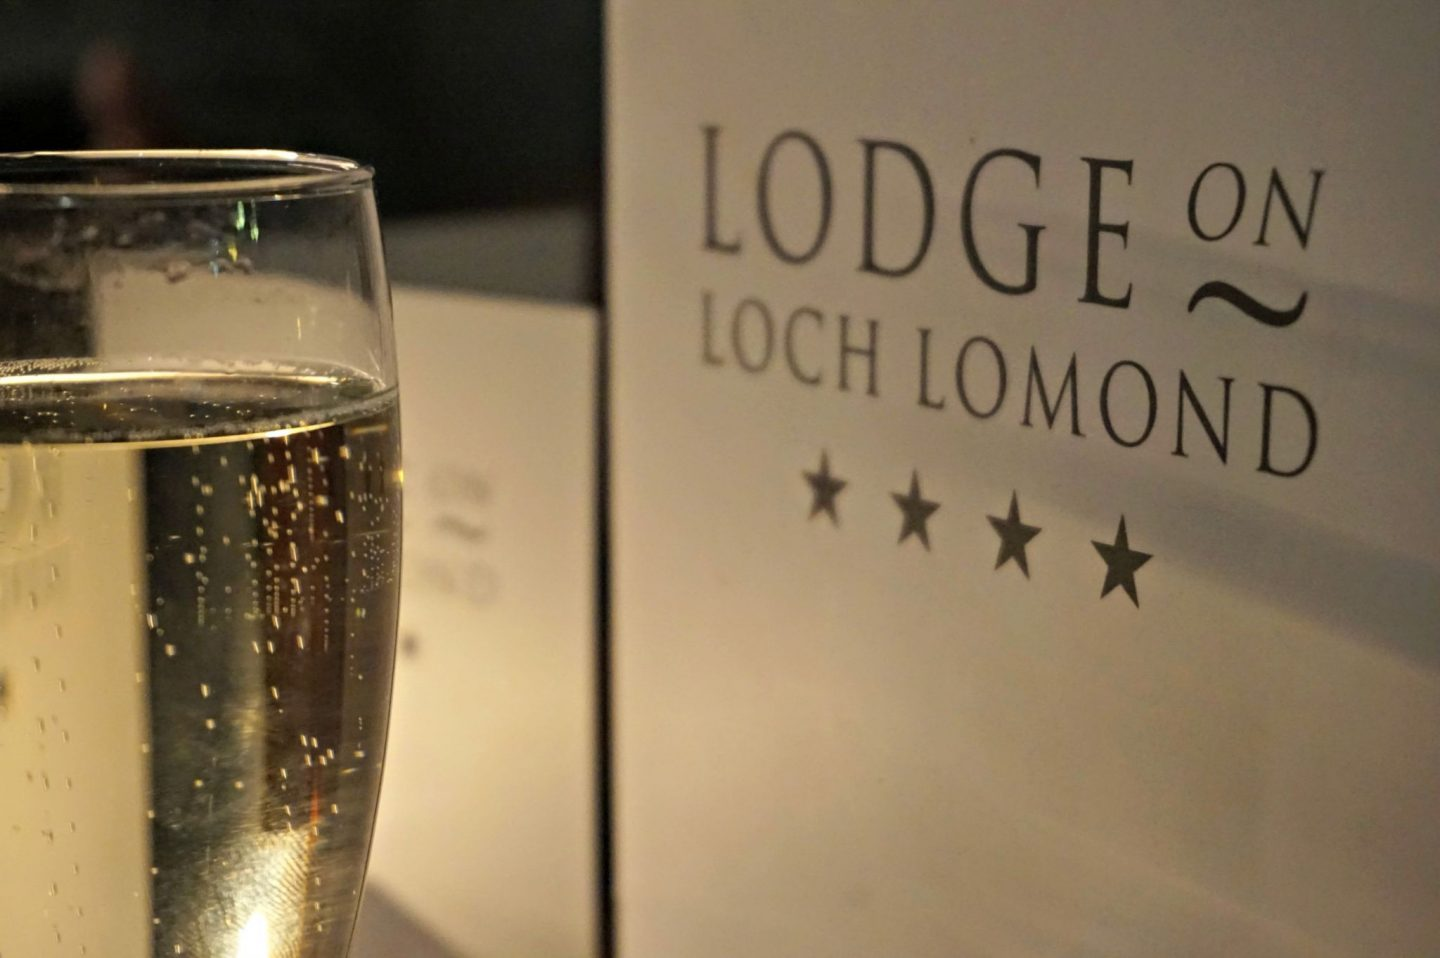 Lodge on Loch Lomond Review